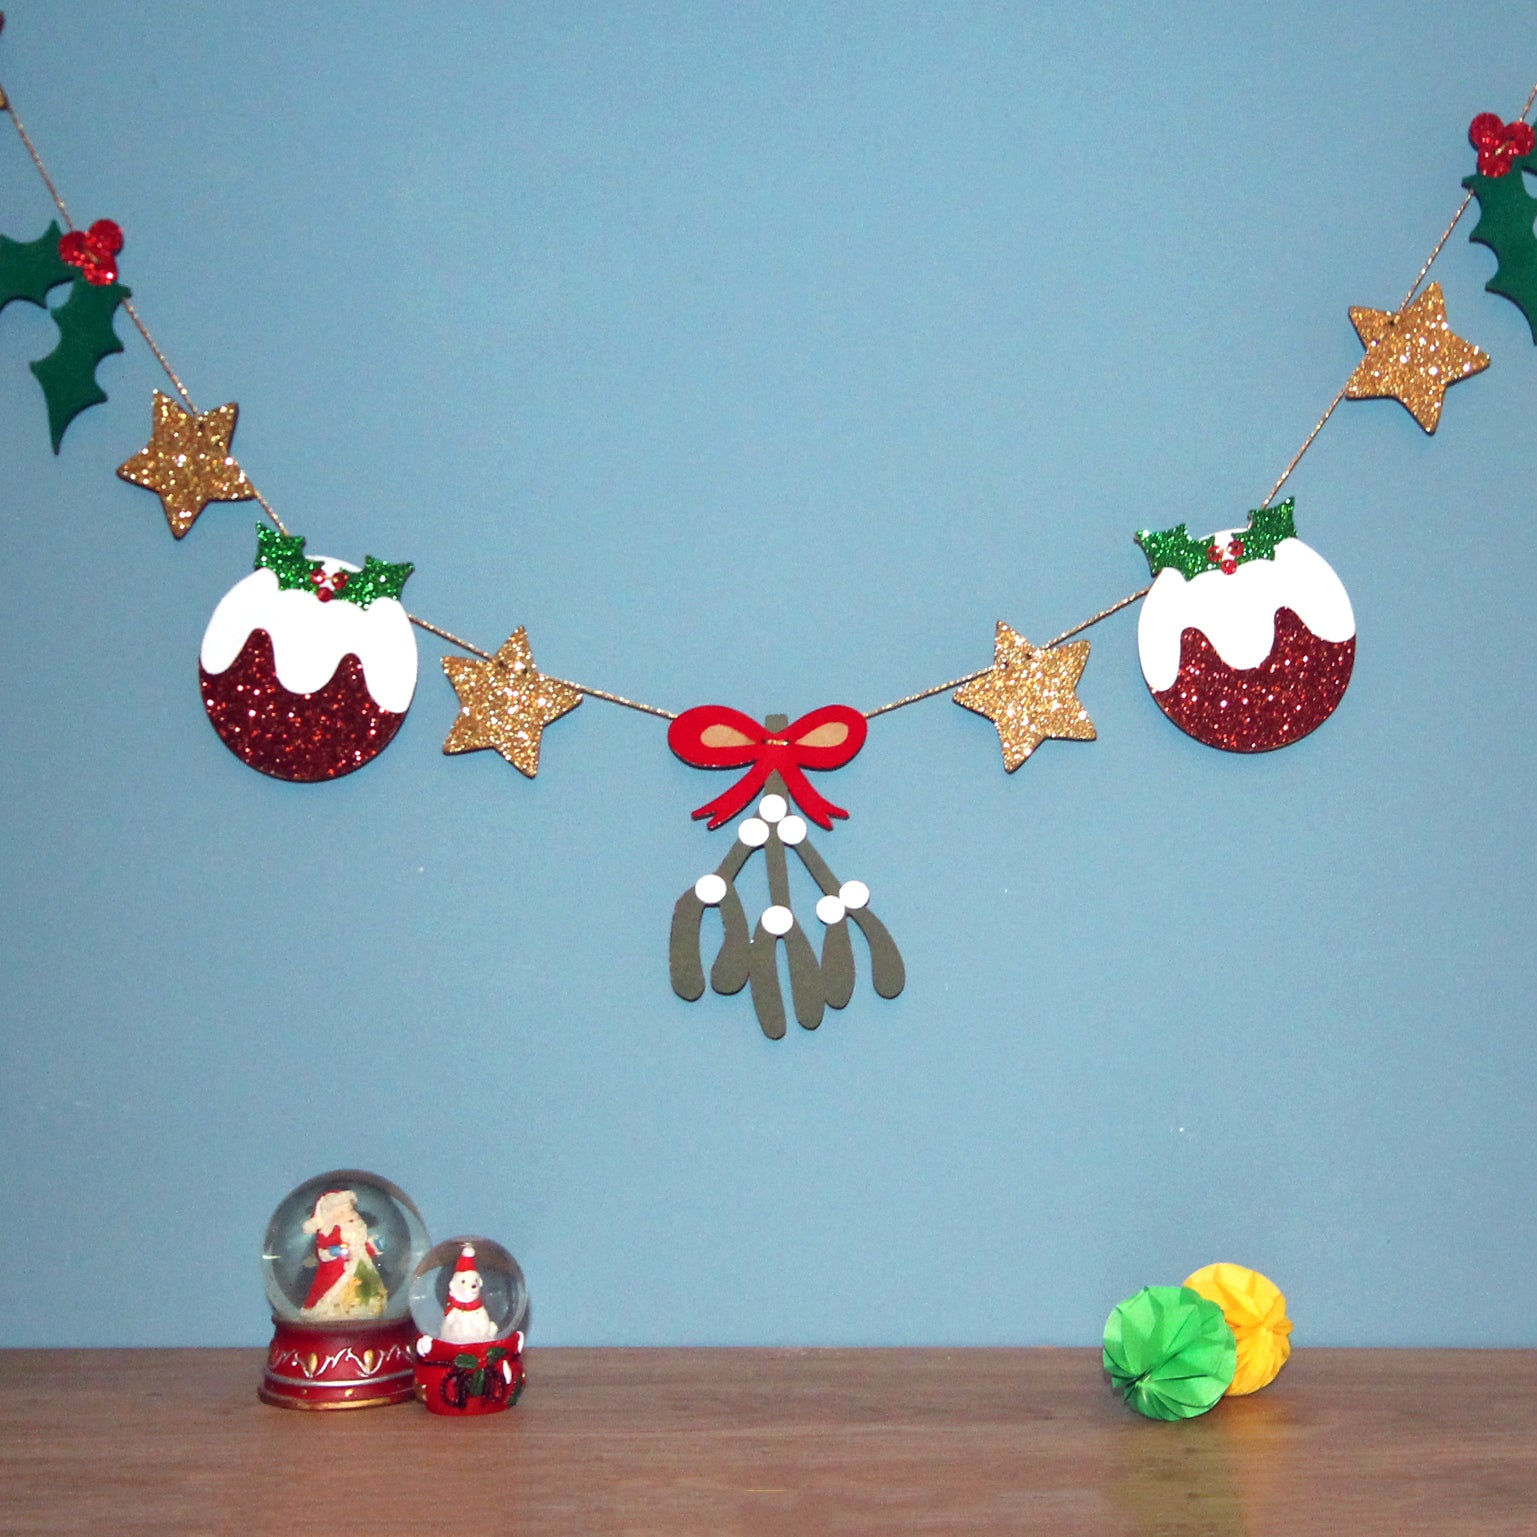 Sparkly Christmas garland or bunting